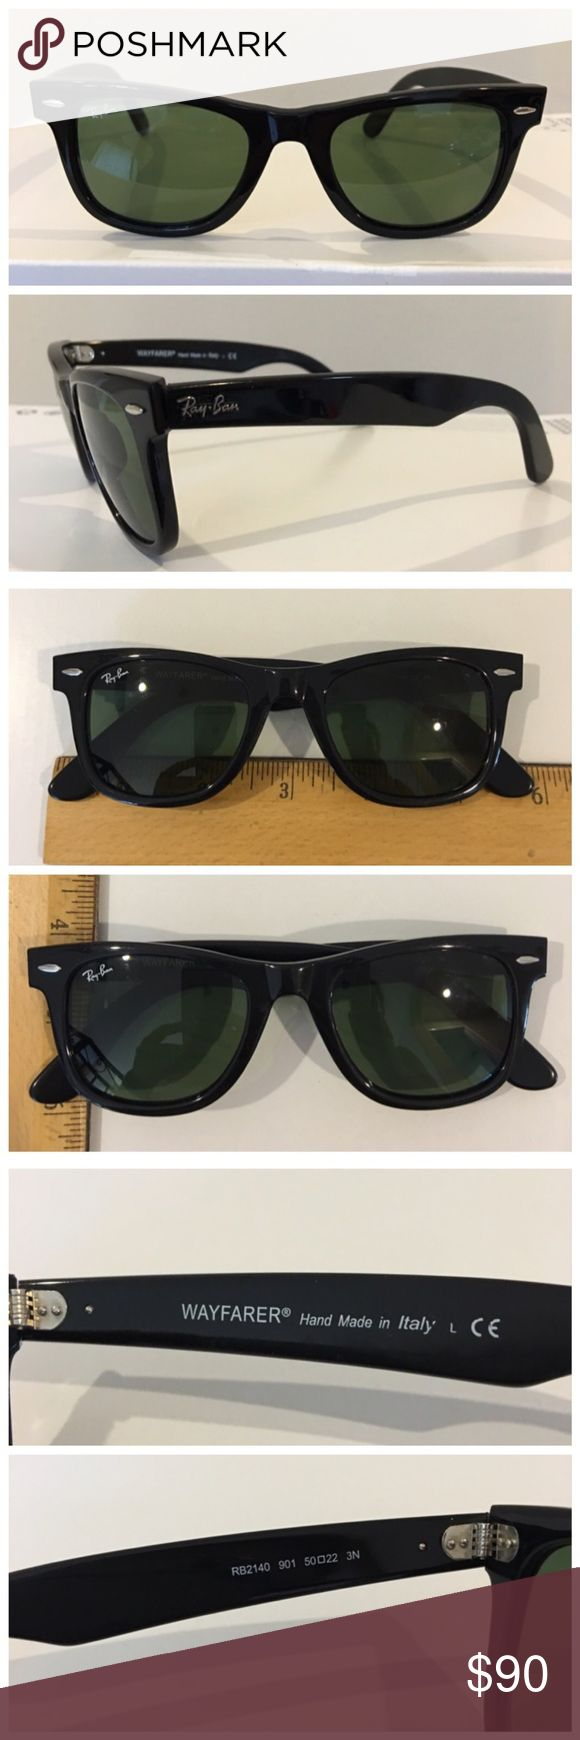 Authentic RAY BAN Wayfarer sunglasses, black Authentic RAY BAN Wayfarer sunglasses. Black frames in excellent condition, with no perceptible scratches. Lens inscribed with signature Ray-Ban word and initials. See photo for measurements. Hand made in Italy. Model RB2140. Does not come with a case. In excellent preowned condition. Please ask any questions you may have before purchasing. Trades.  Low ball offers. Ray-Ban Accessories Sunglasses